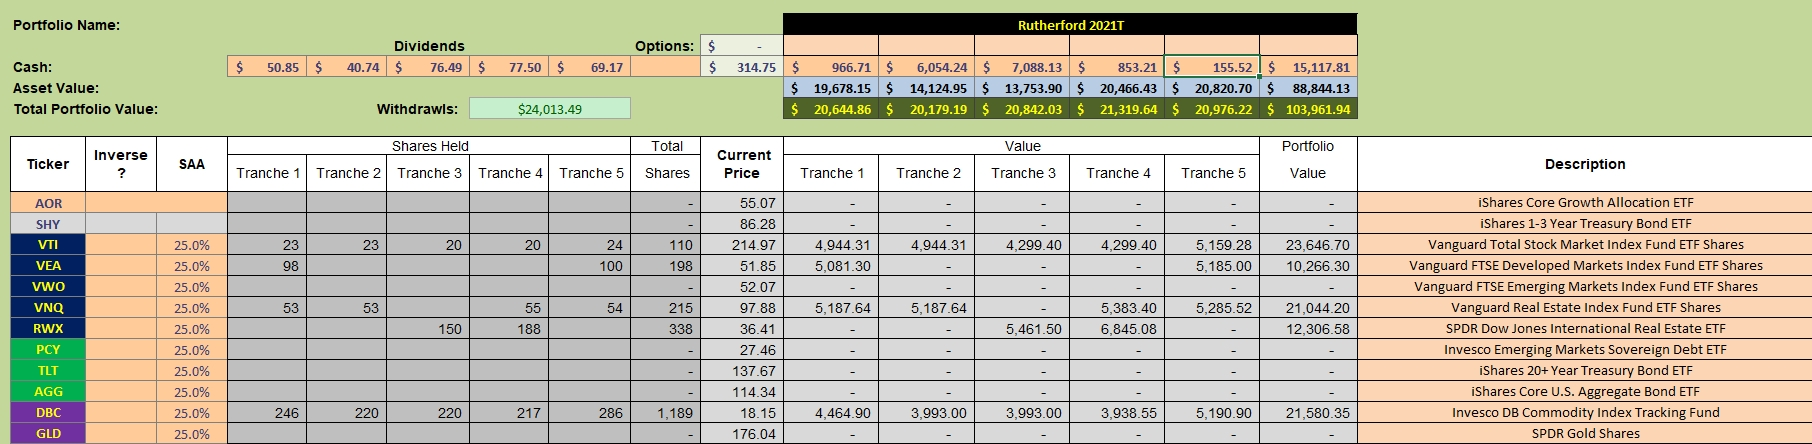 Rutherford Portfolio Review (Tranche 5) – 21 May 2021 4